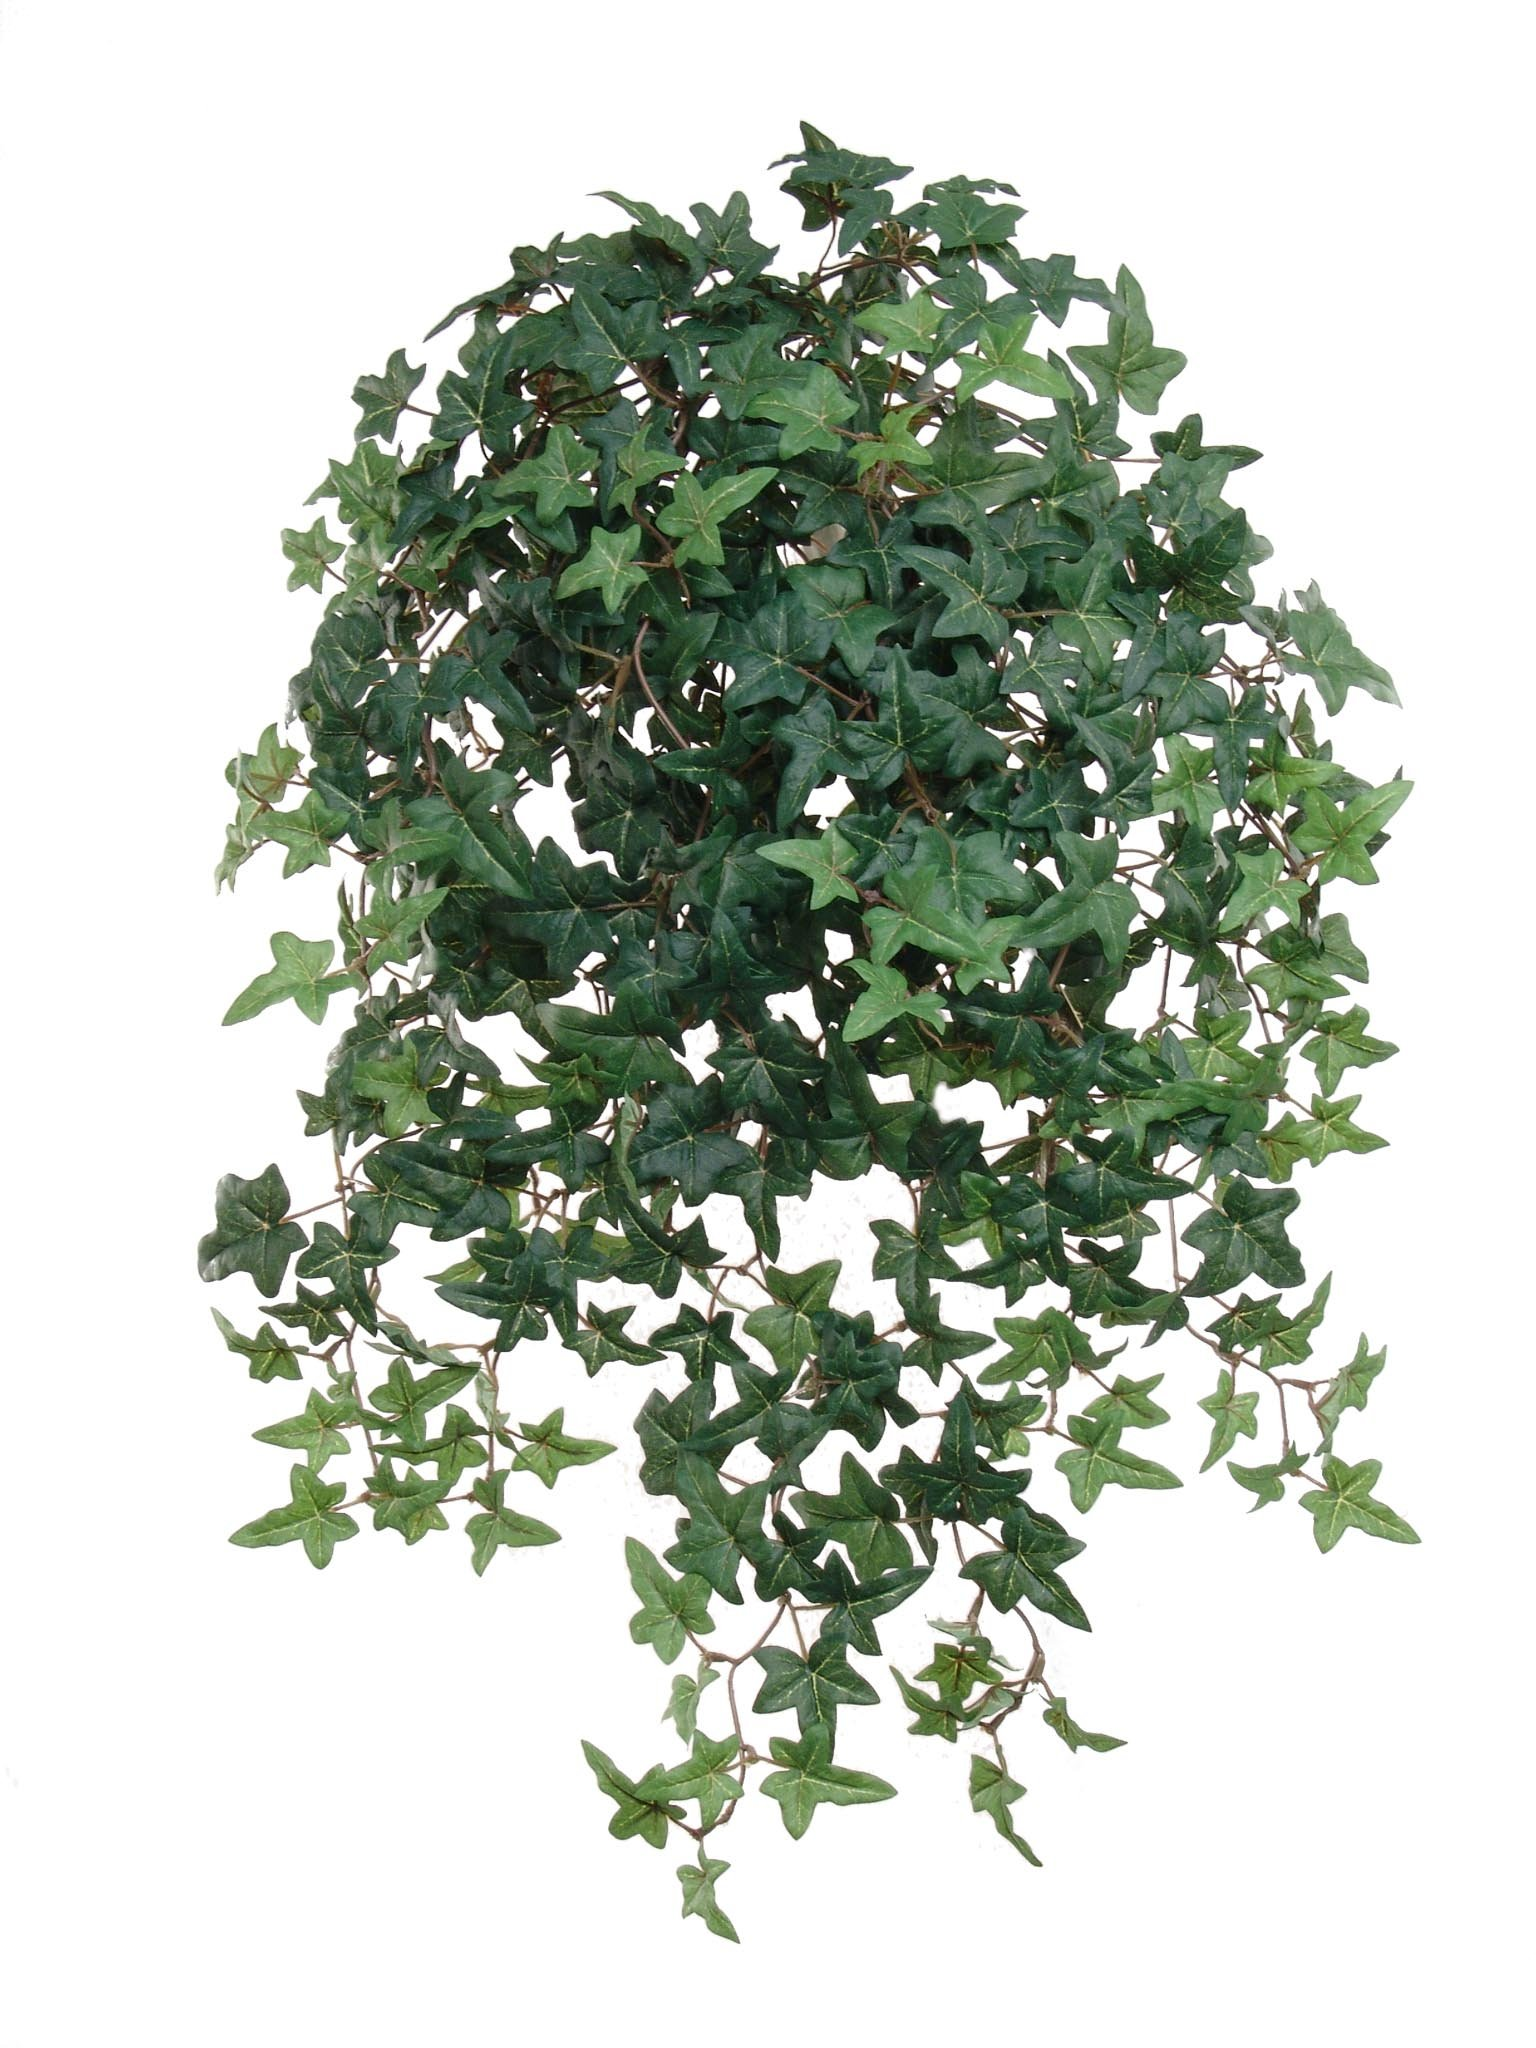 Hanford-design-Larksilk-265-Artificial-English-Ivy-Plant-Small-Artificial-Plants-with-Silk-Greenery-Faux-Ivy-Vines-Artificial-Ivy-Plant-with-450-Fake-Ivy-Leaves